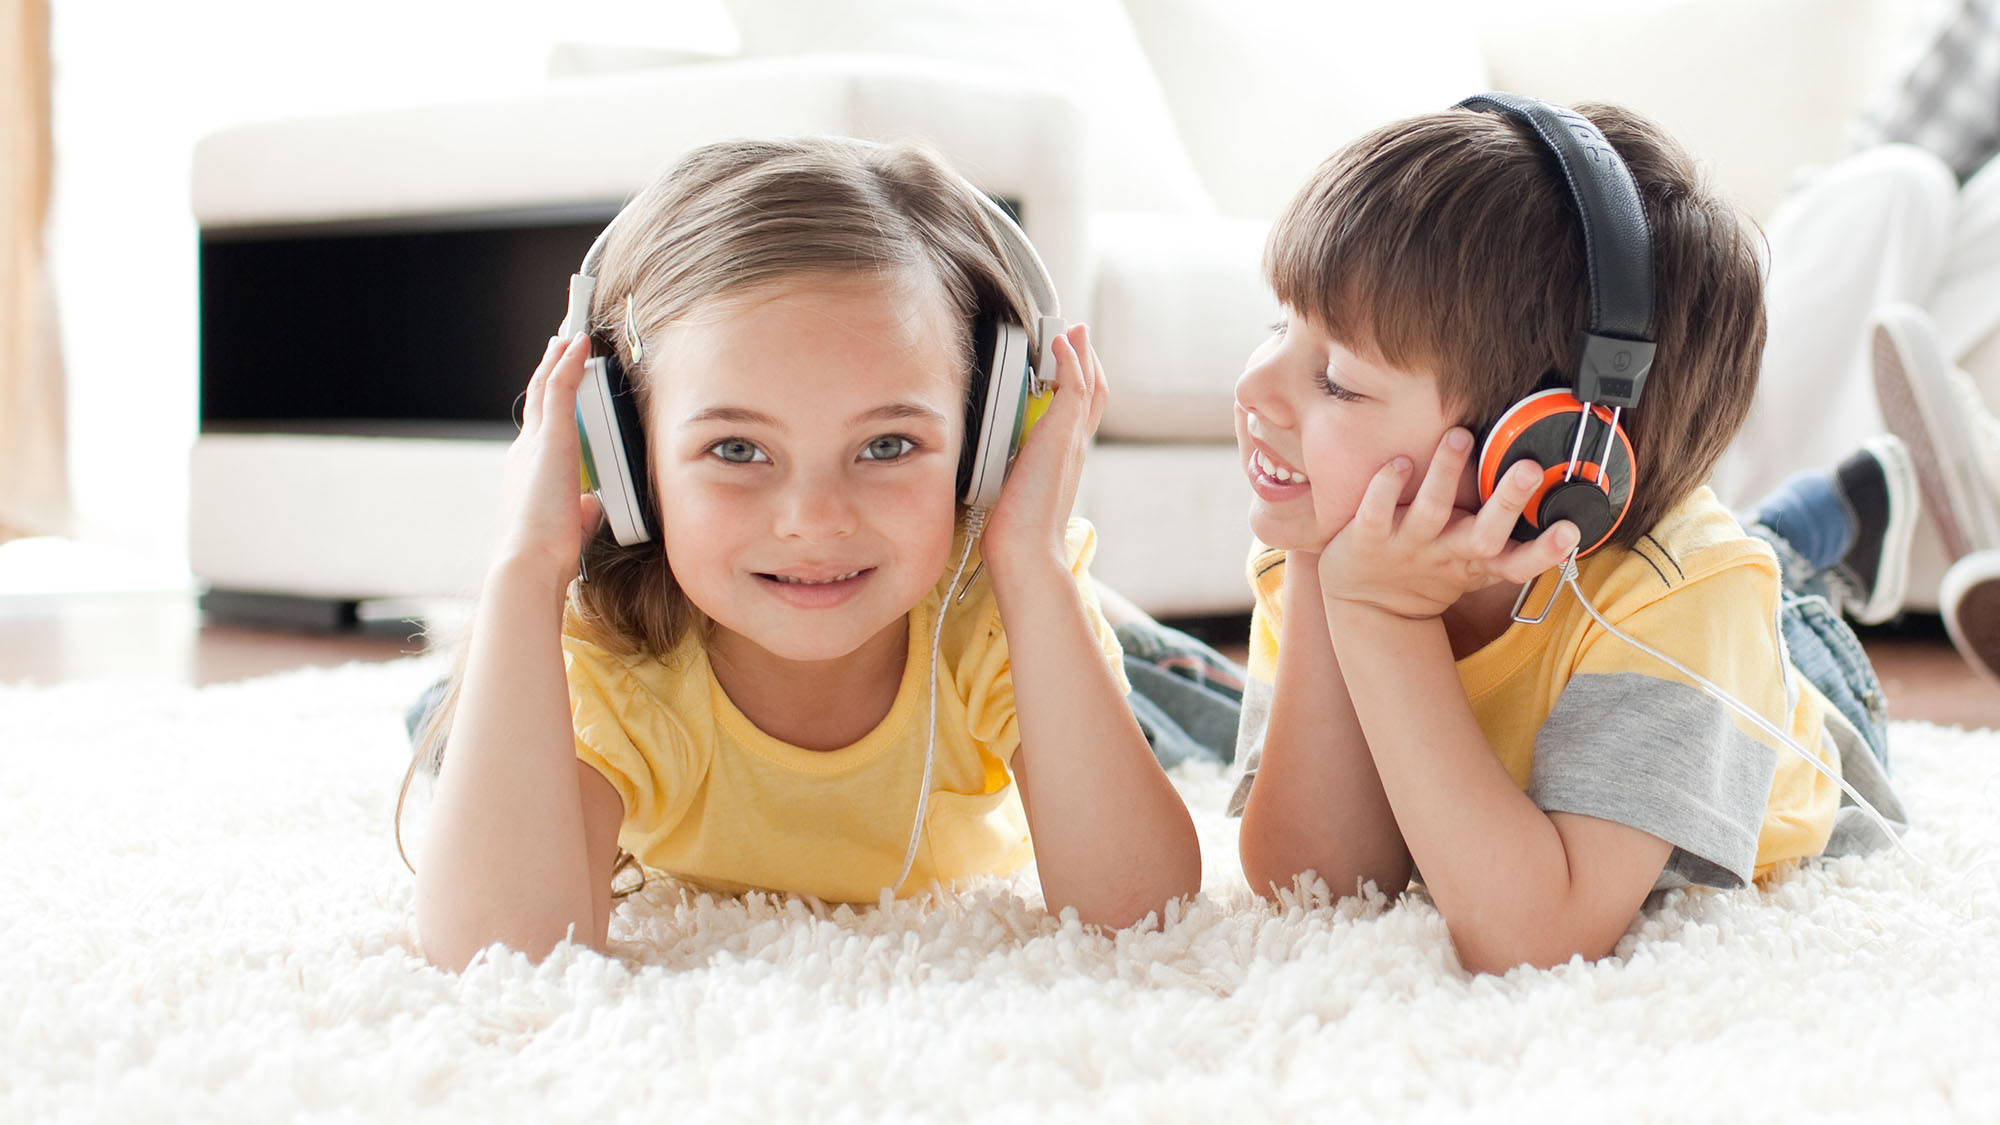 Tell your grandkids! 1.1 billion people, especially young people, at risk of hearing loss, according to World Health Organisation